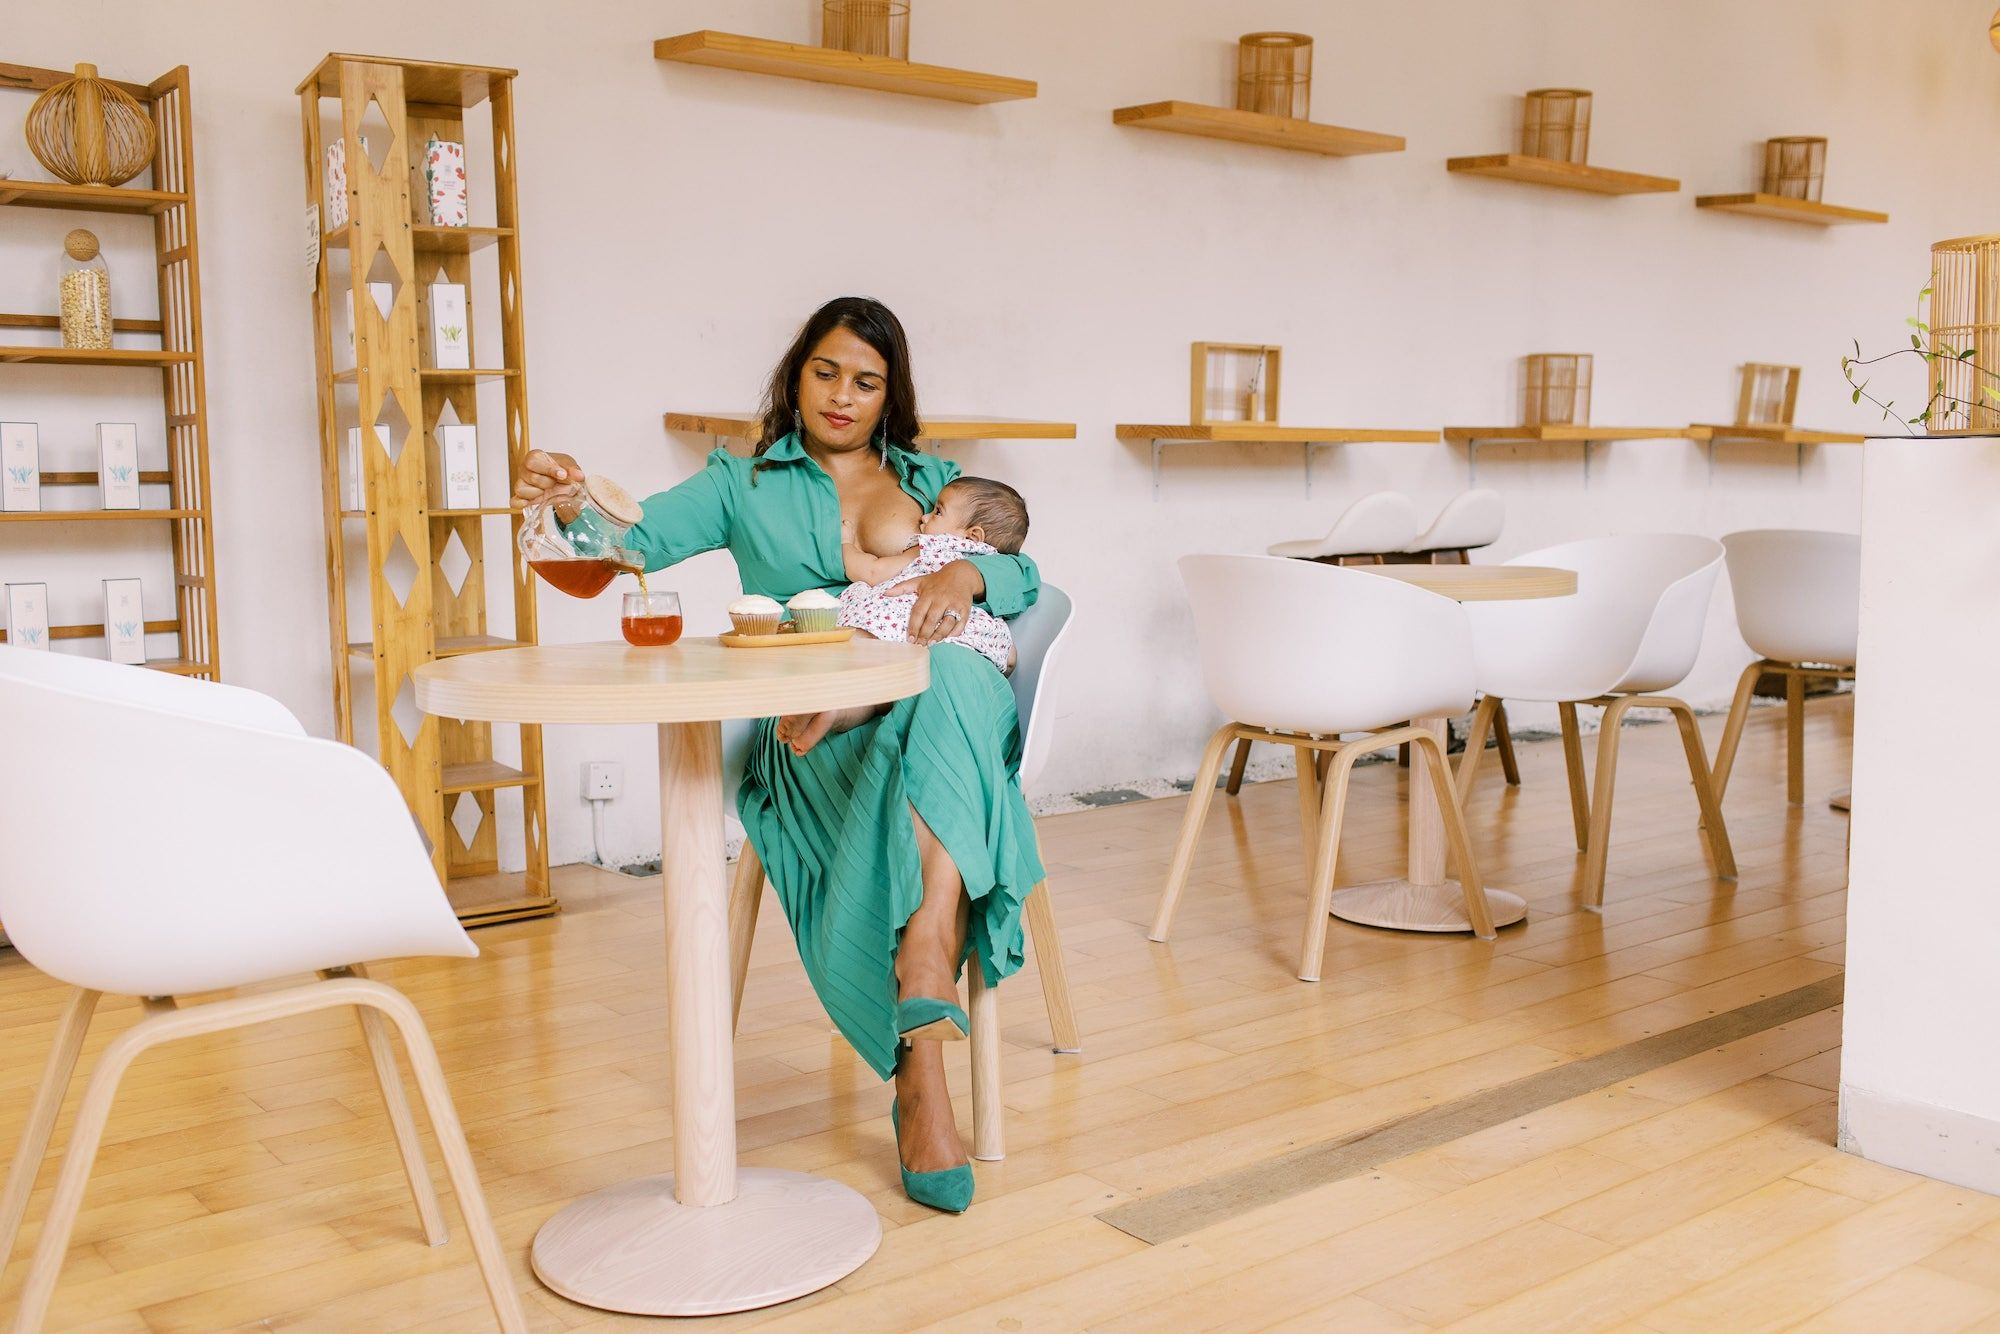 Liz Thomas, founder of the It Tastes Like Love Campaign, sits breastfeeding her baby in a Hong Kong cafe